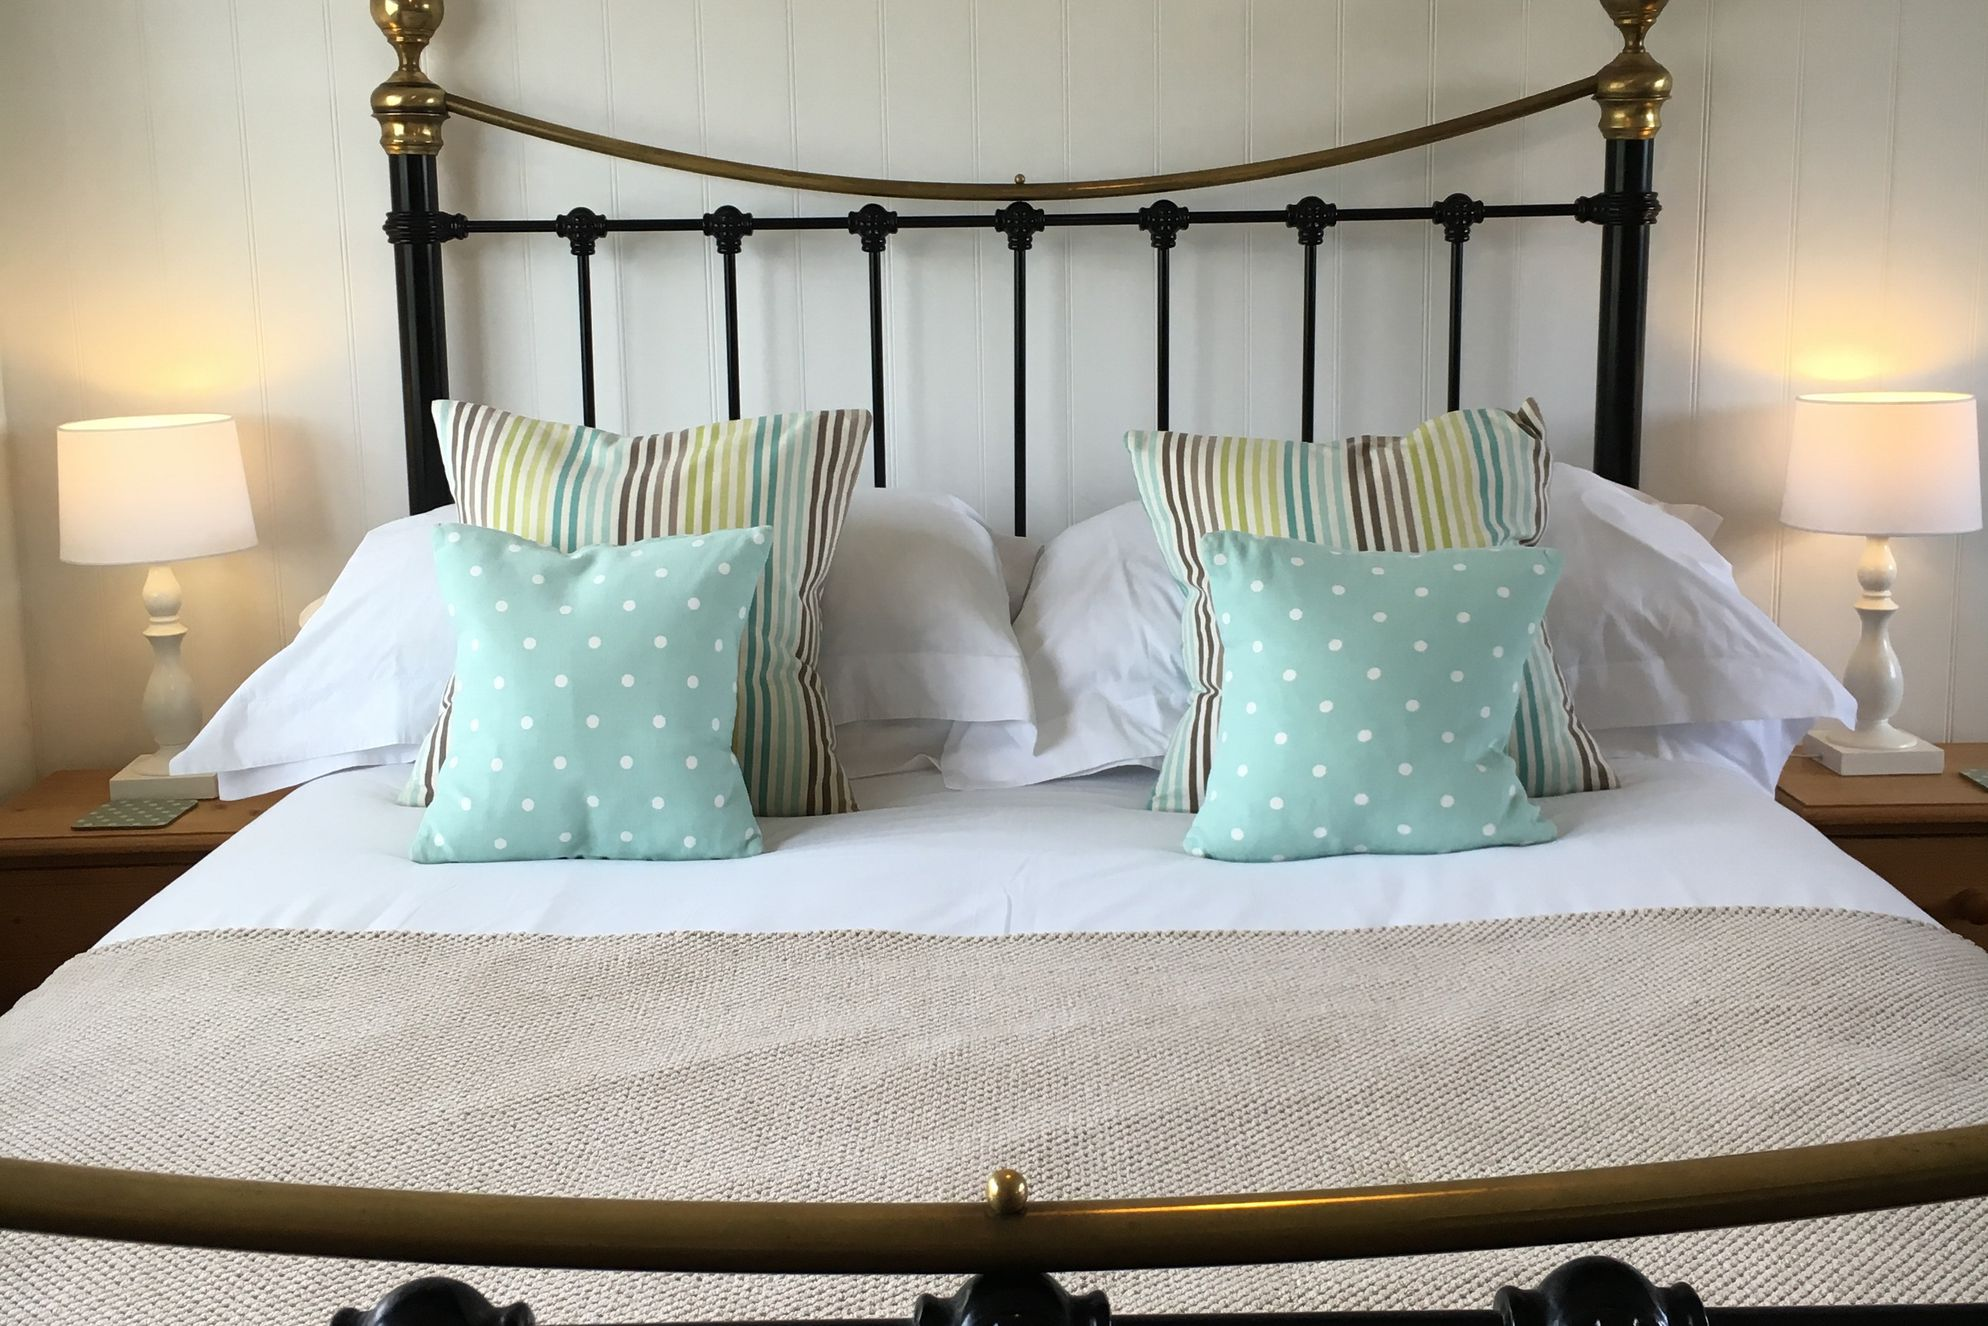 Cosy double bedroom with traditional wrought iron bed and colourful cushions